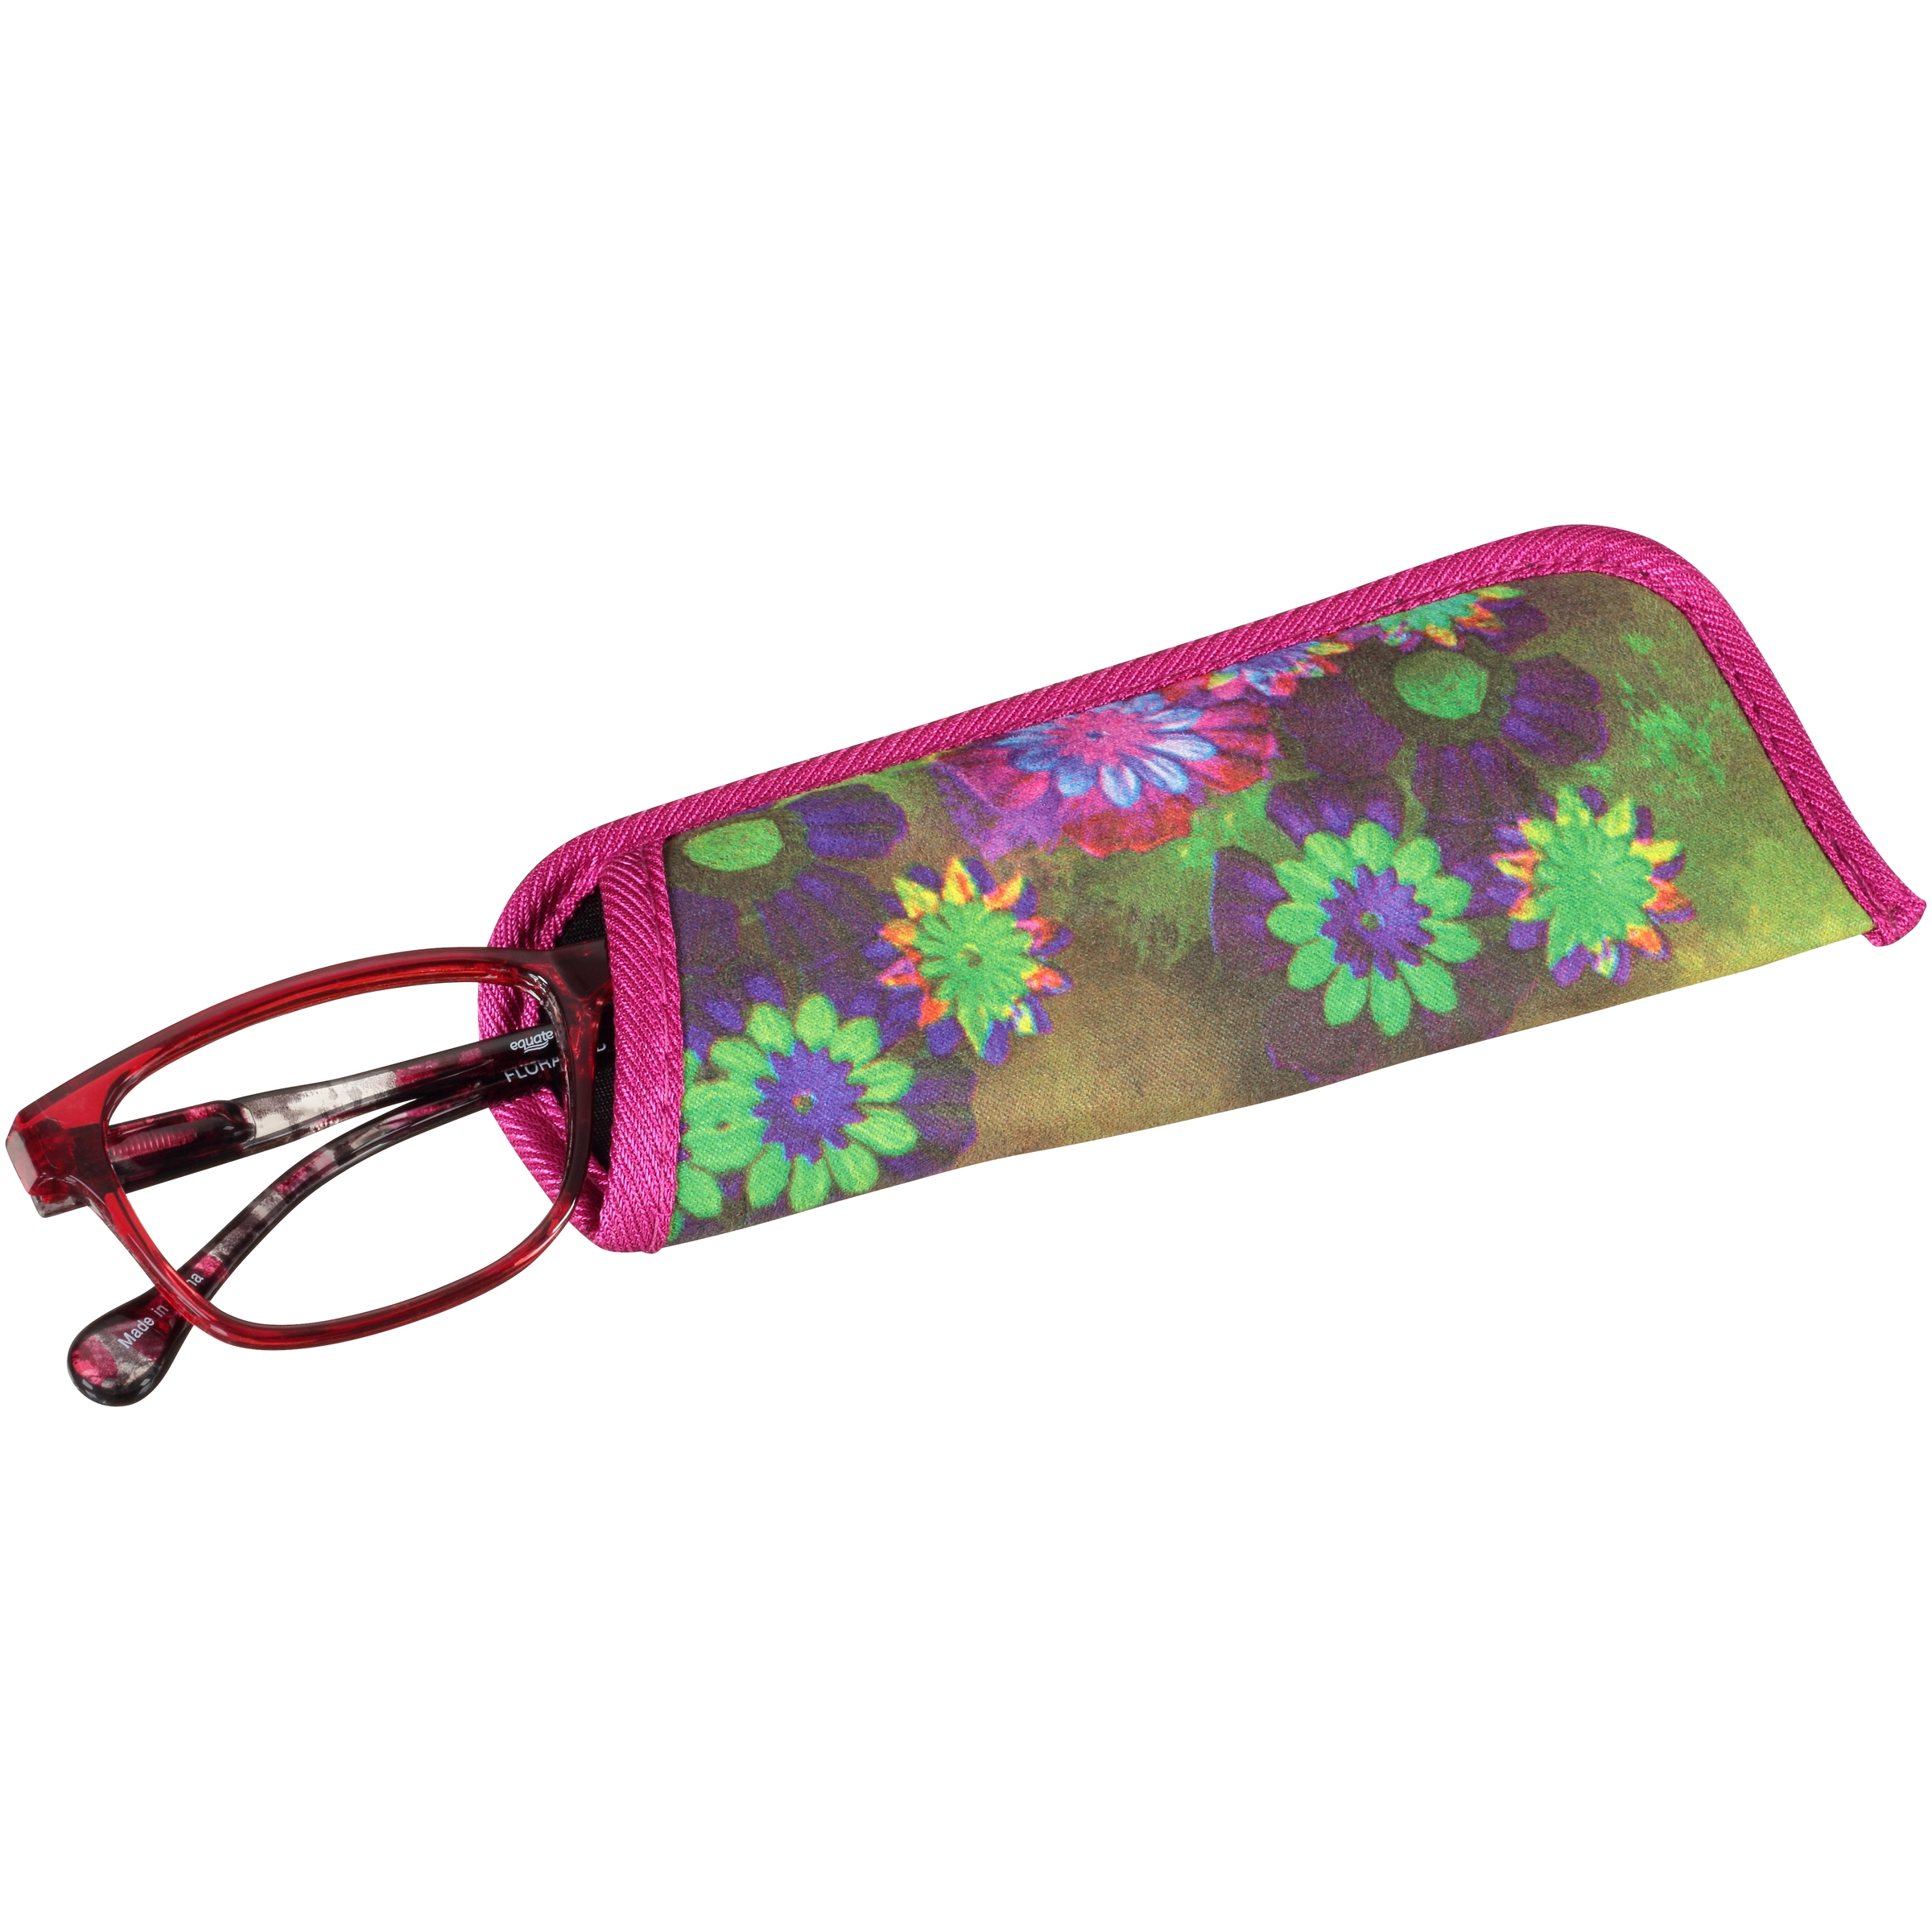 fdc3df026c2 Equate Readers Flora Red +1.00 Reading Glasses with Case - Walmart.com